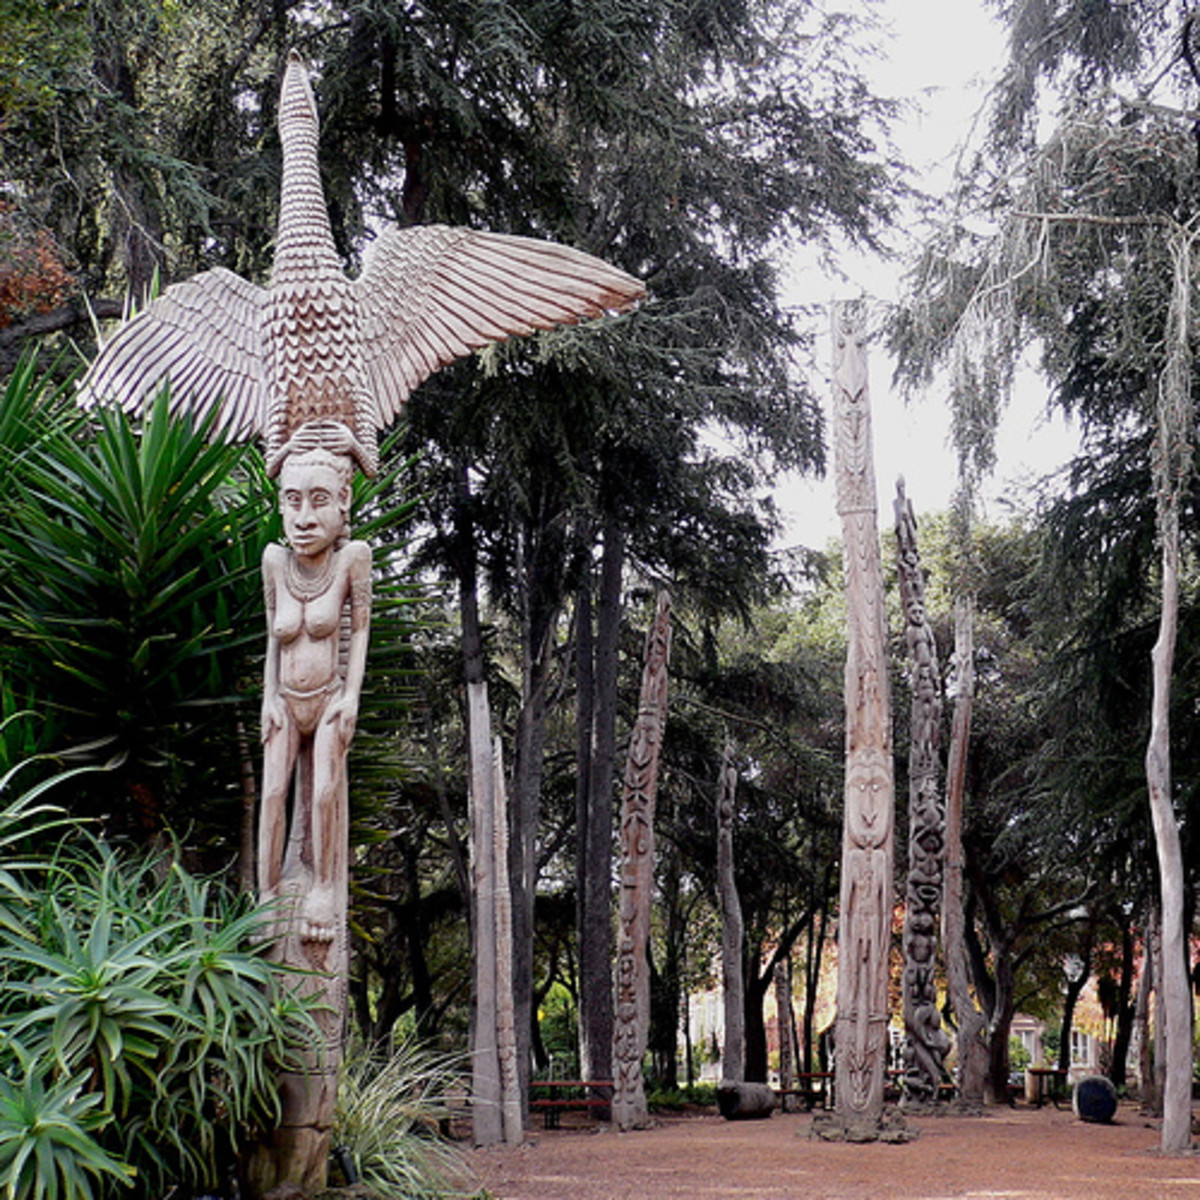 Traditional Papua New Guinean poles displayed at Stanford University. Carved and sculpted poles have been created for millennia around the Pacific Rim and in other places.